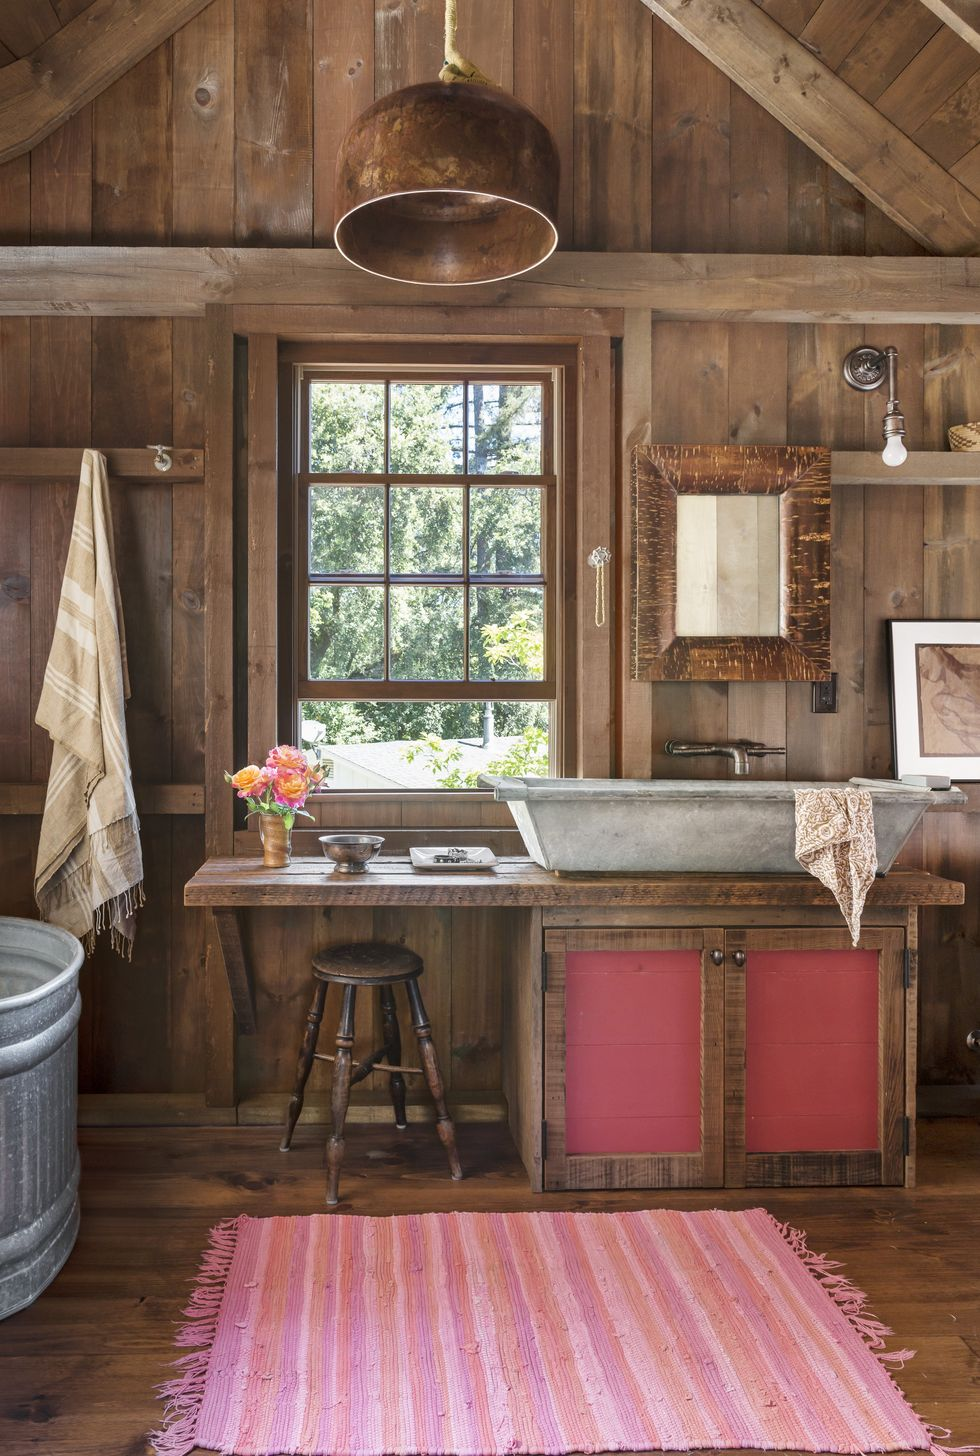 Copper Pendant in rustic bathroom lighting ideas in wood bathroom with large square window